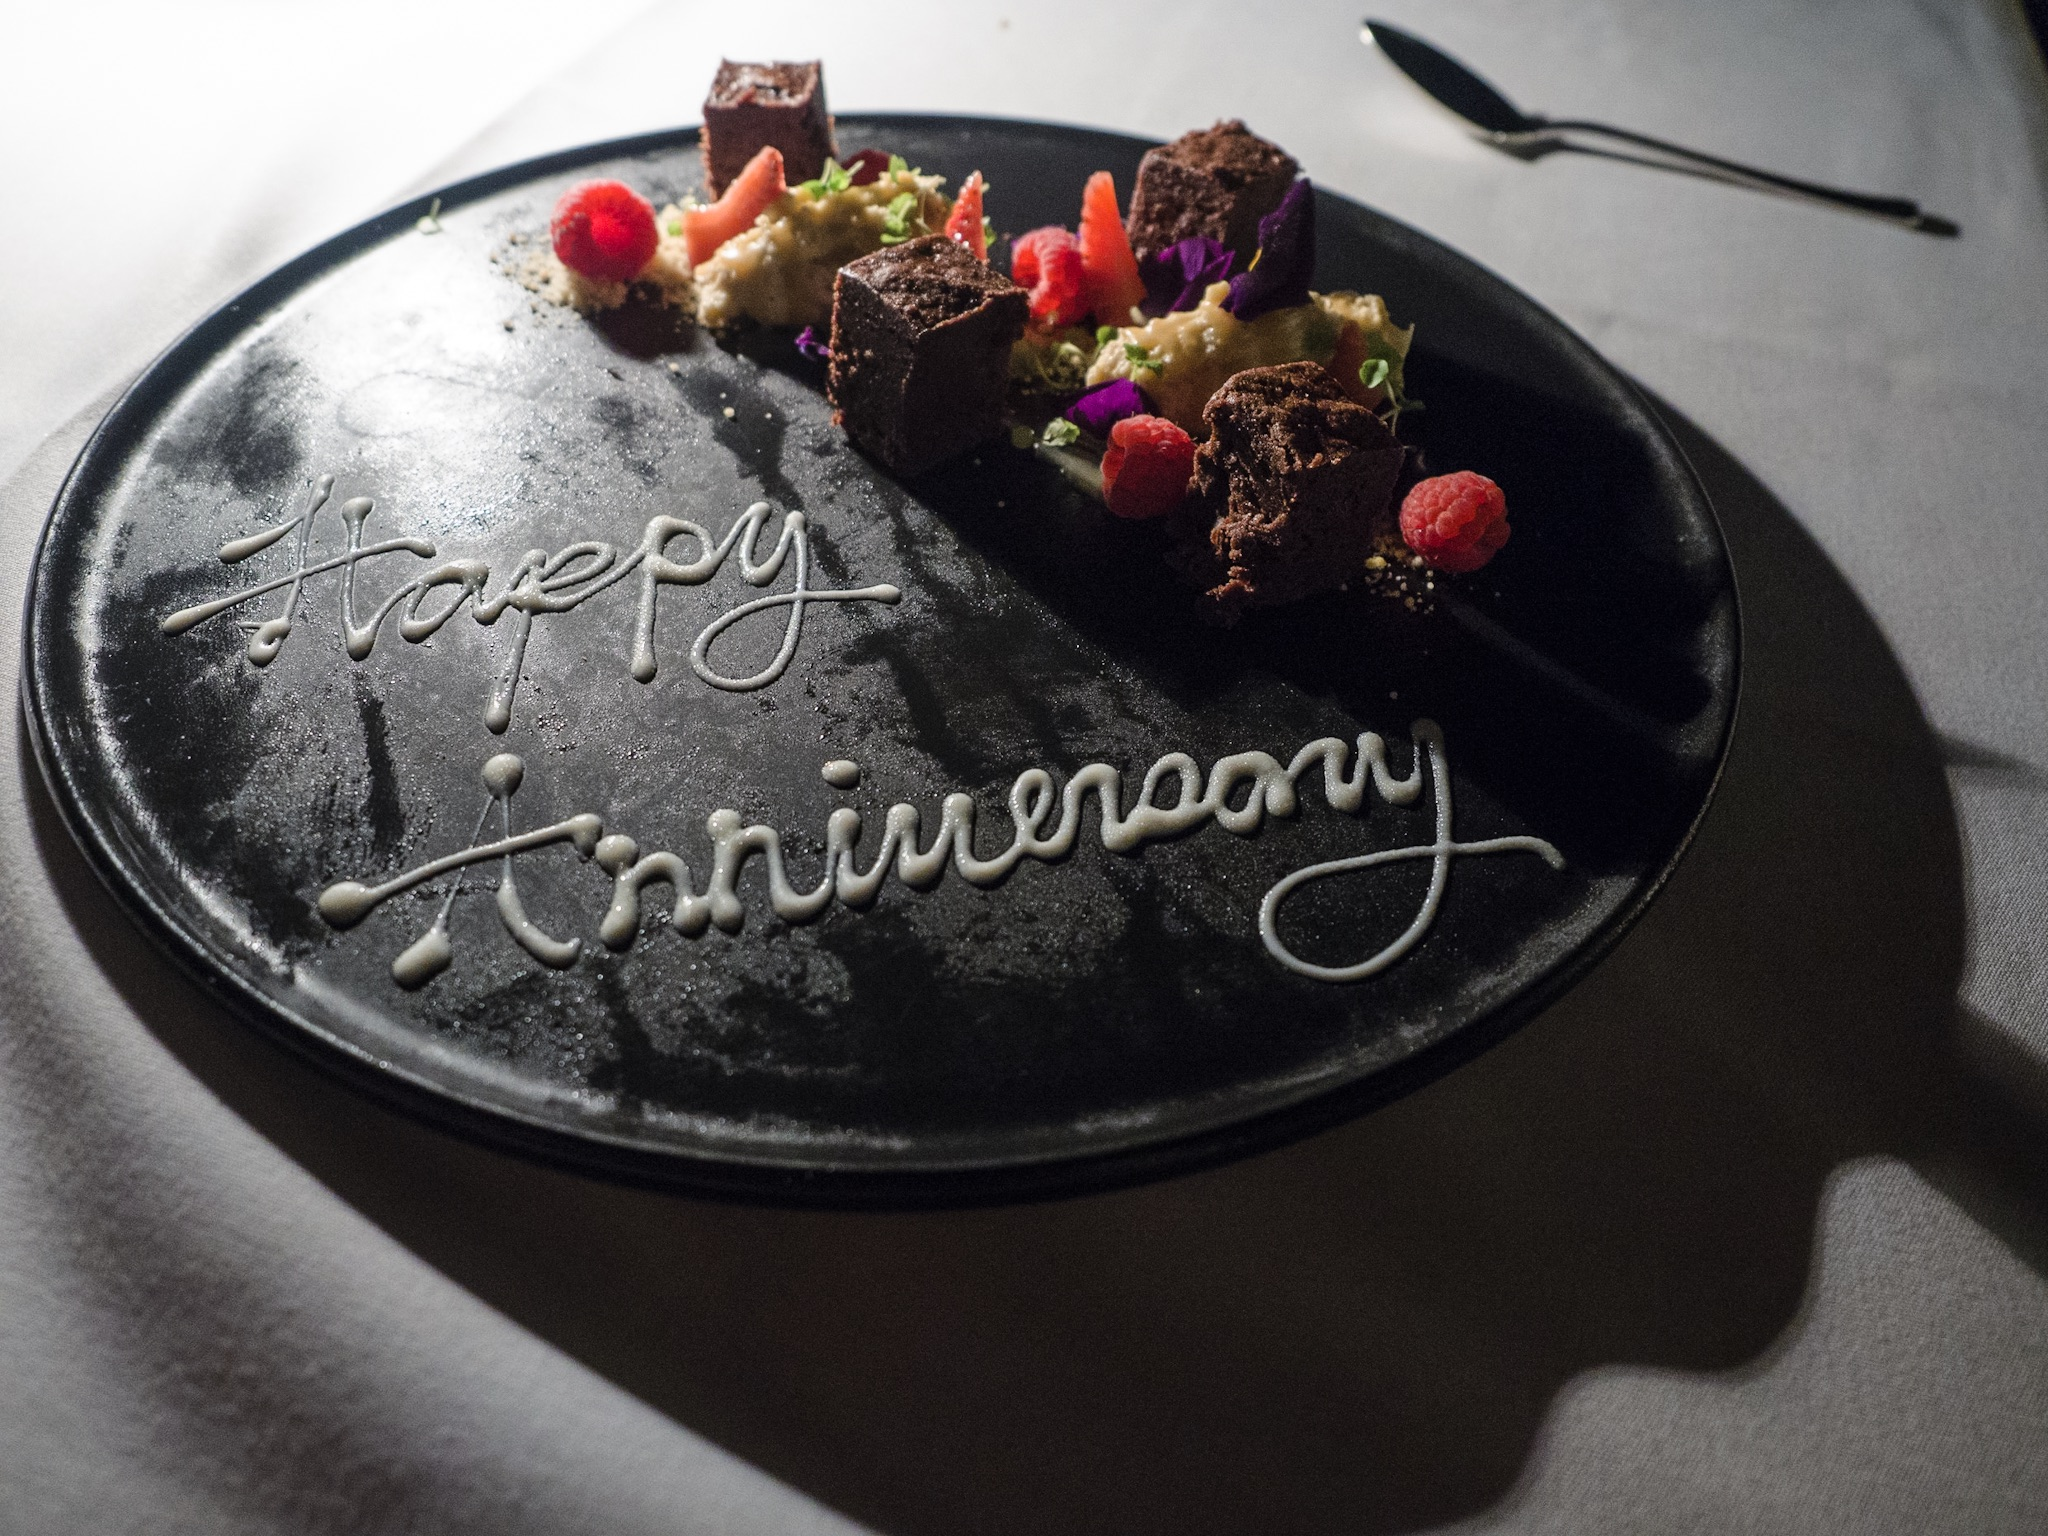 The hotel treated us on our wedding anniversary.